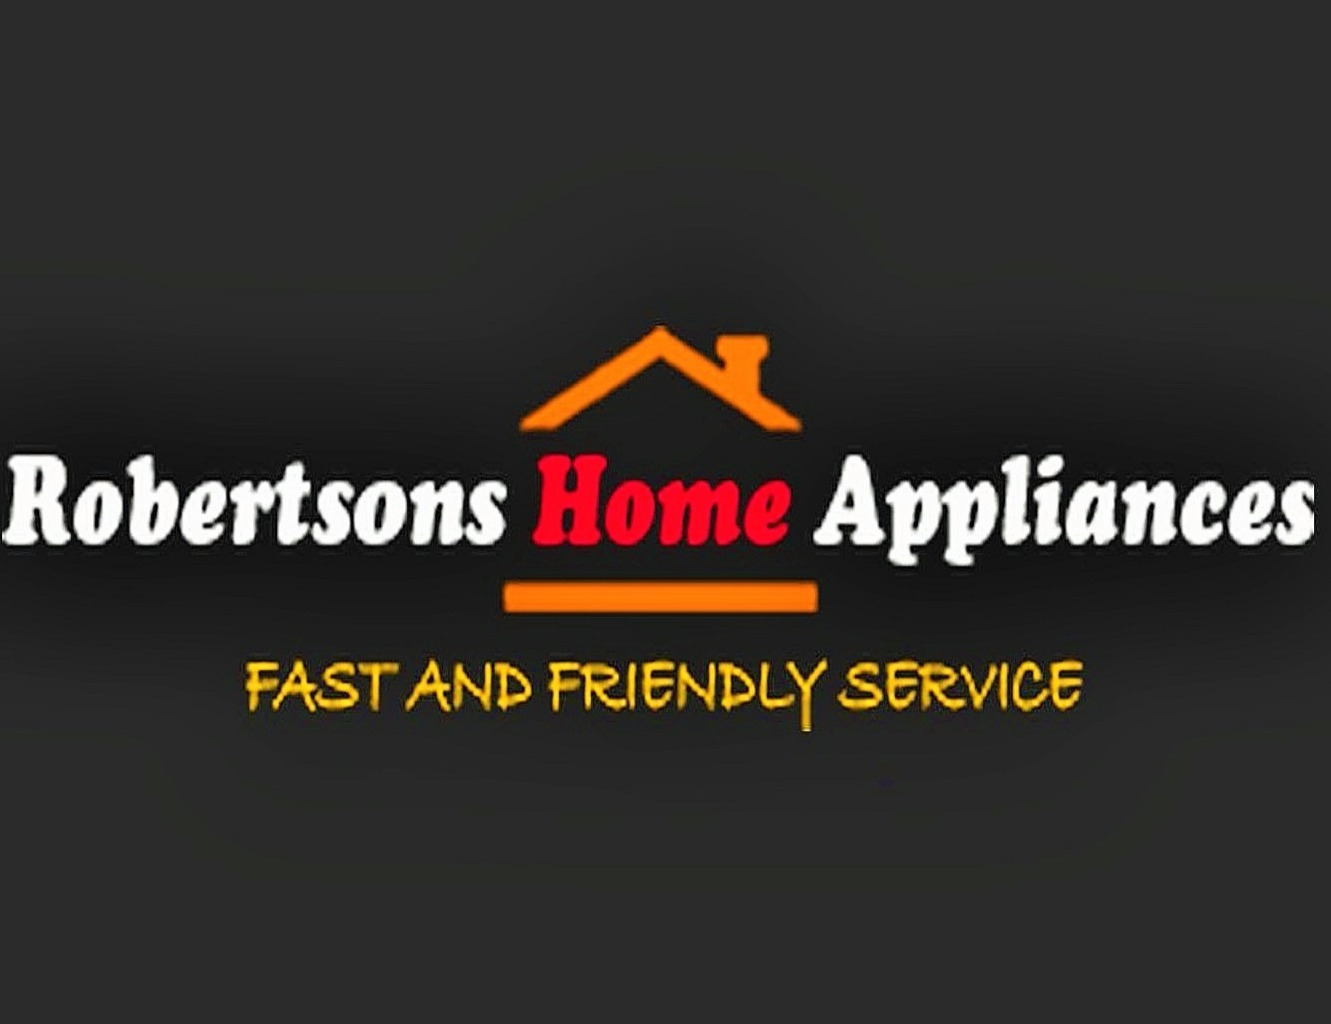 Appliance repairs in new zealand repairs servicing at yellow nz robertsons home appliances ltd fandeluxe Images